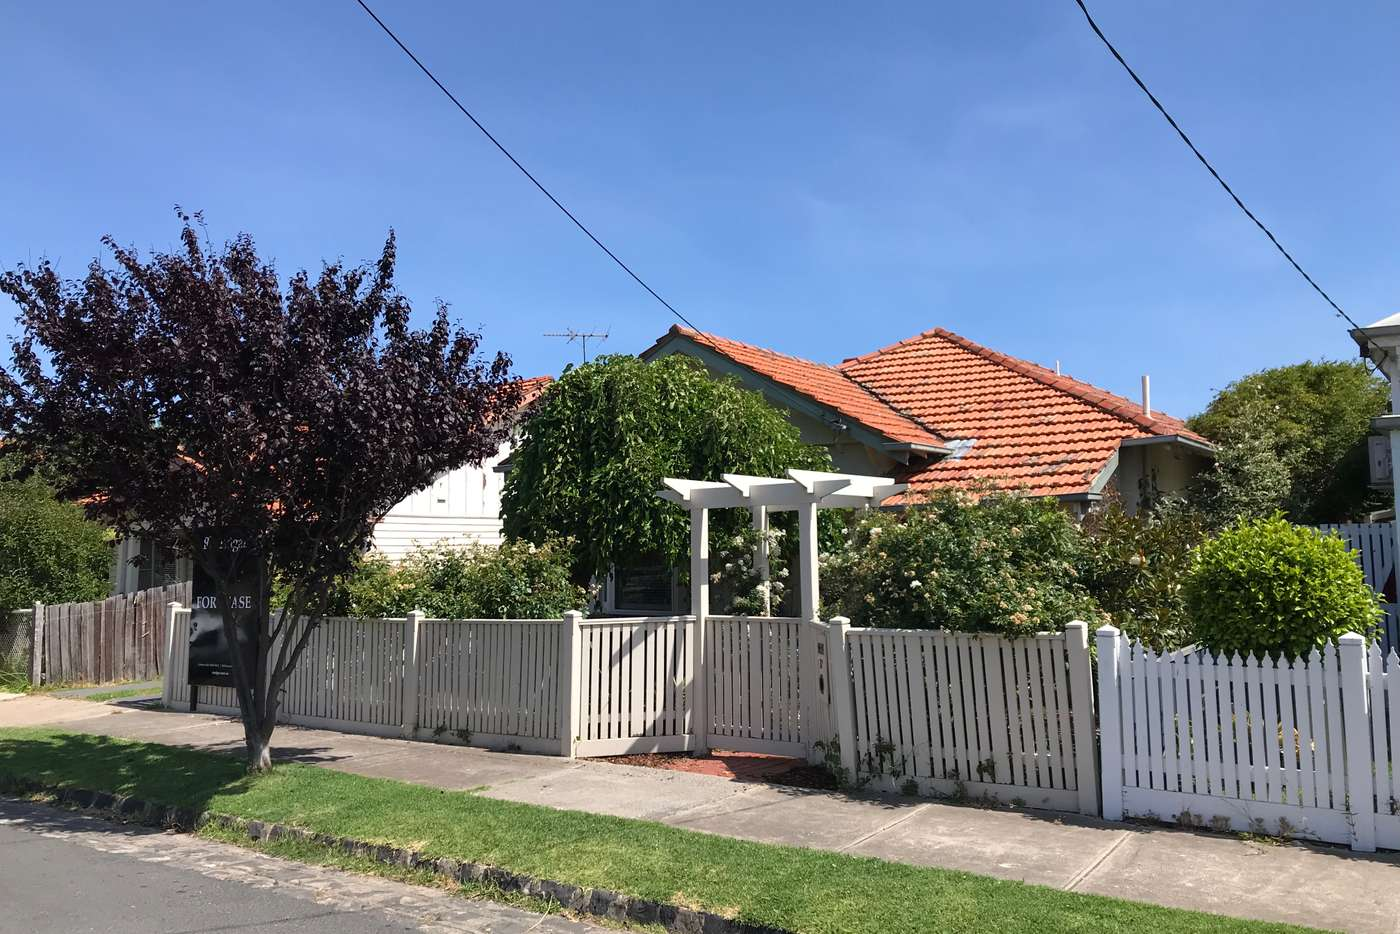 Main view of Homely house listing, 37 Illawarra Street, Williamstown VIC 3016